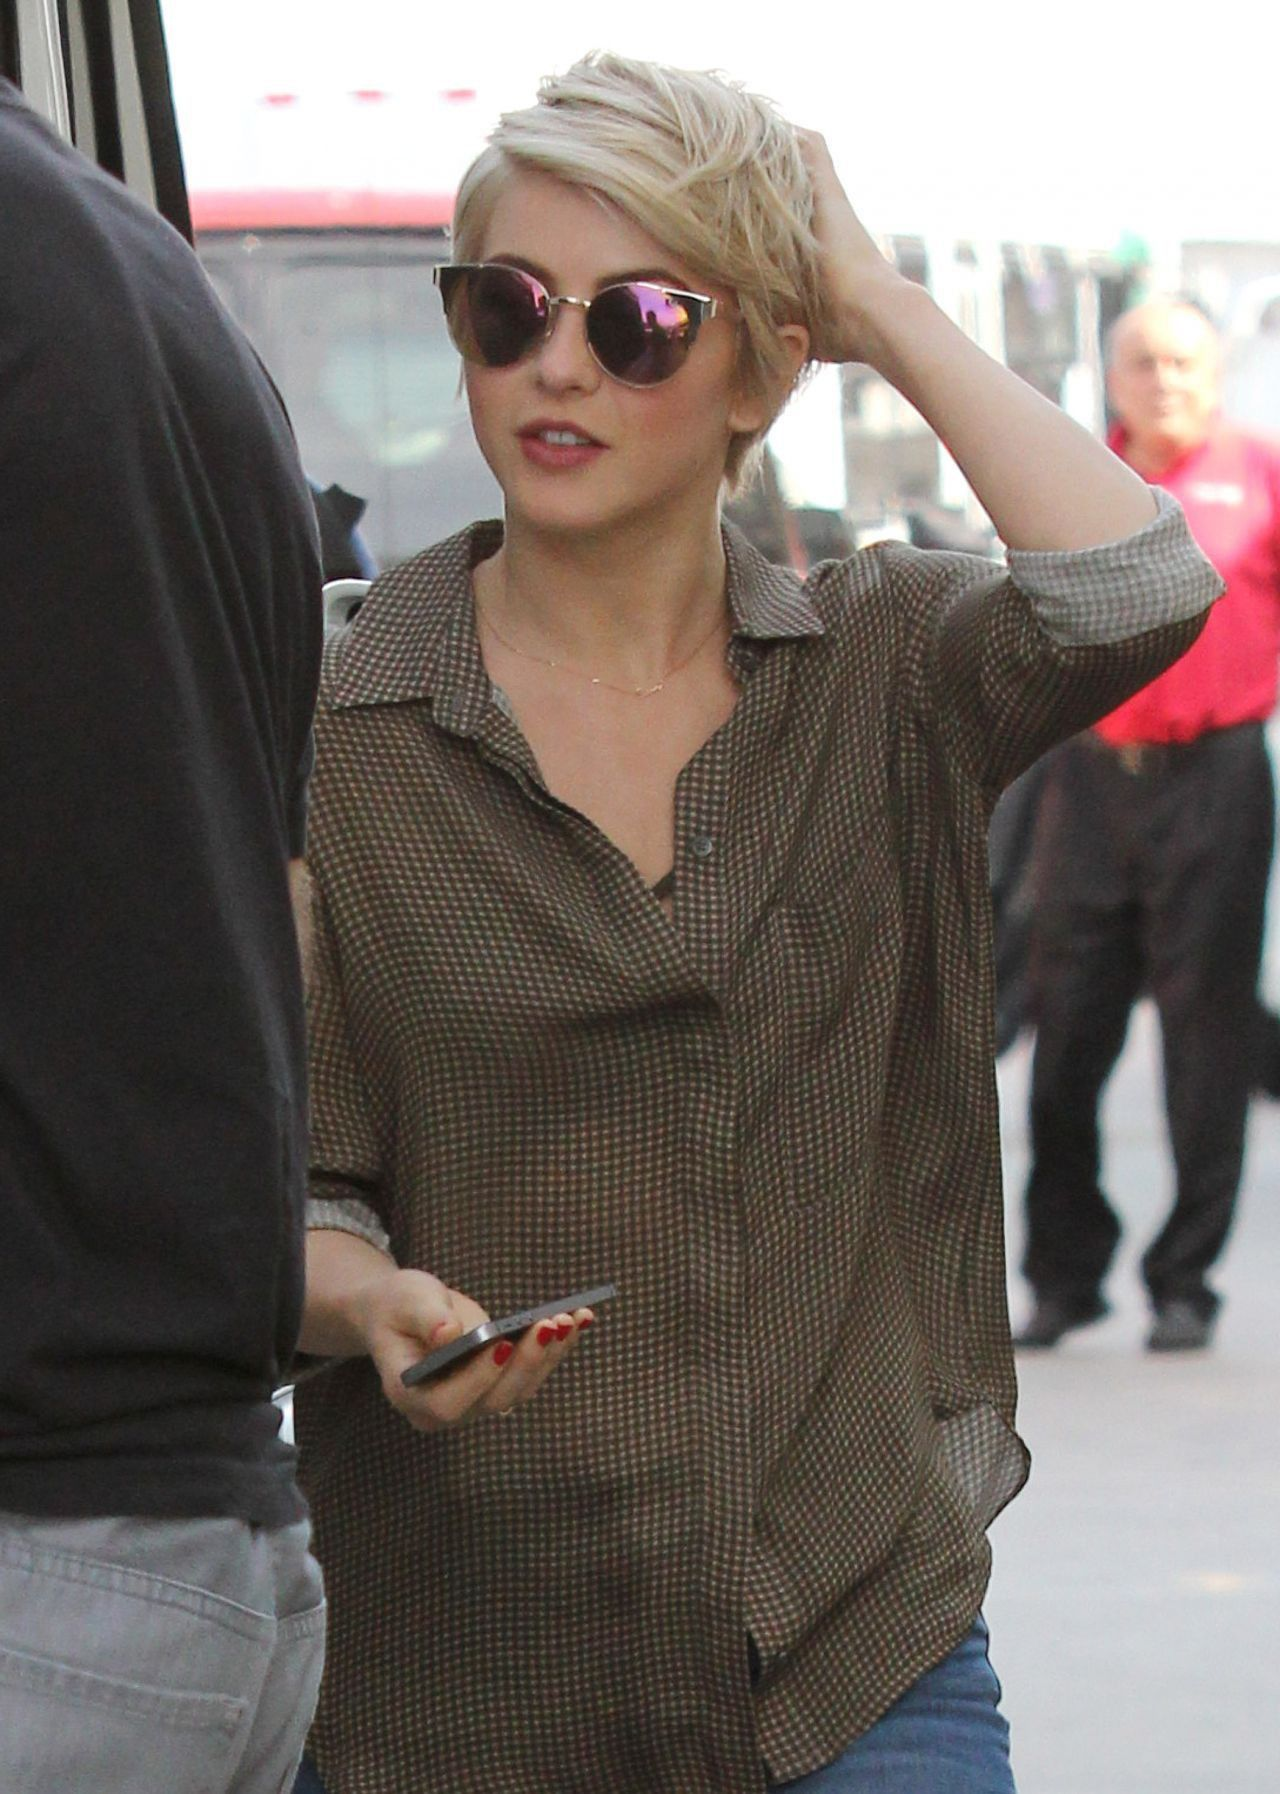 Julianne Hough Short Hair 2014 Julianne Hough At Lax Airport Julianne Hough Short Hair Short Hair Styles 2014 Short Hair Styles